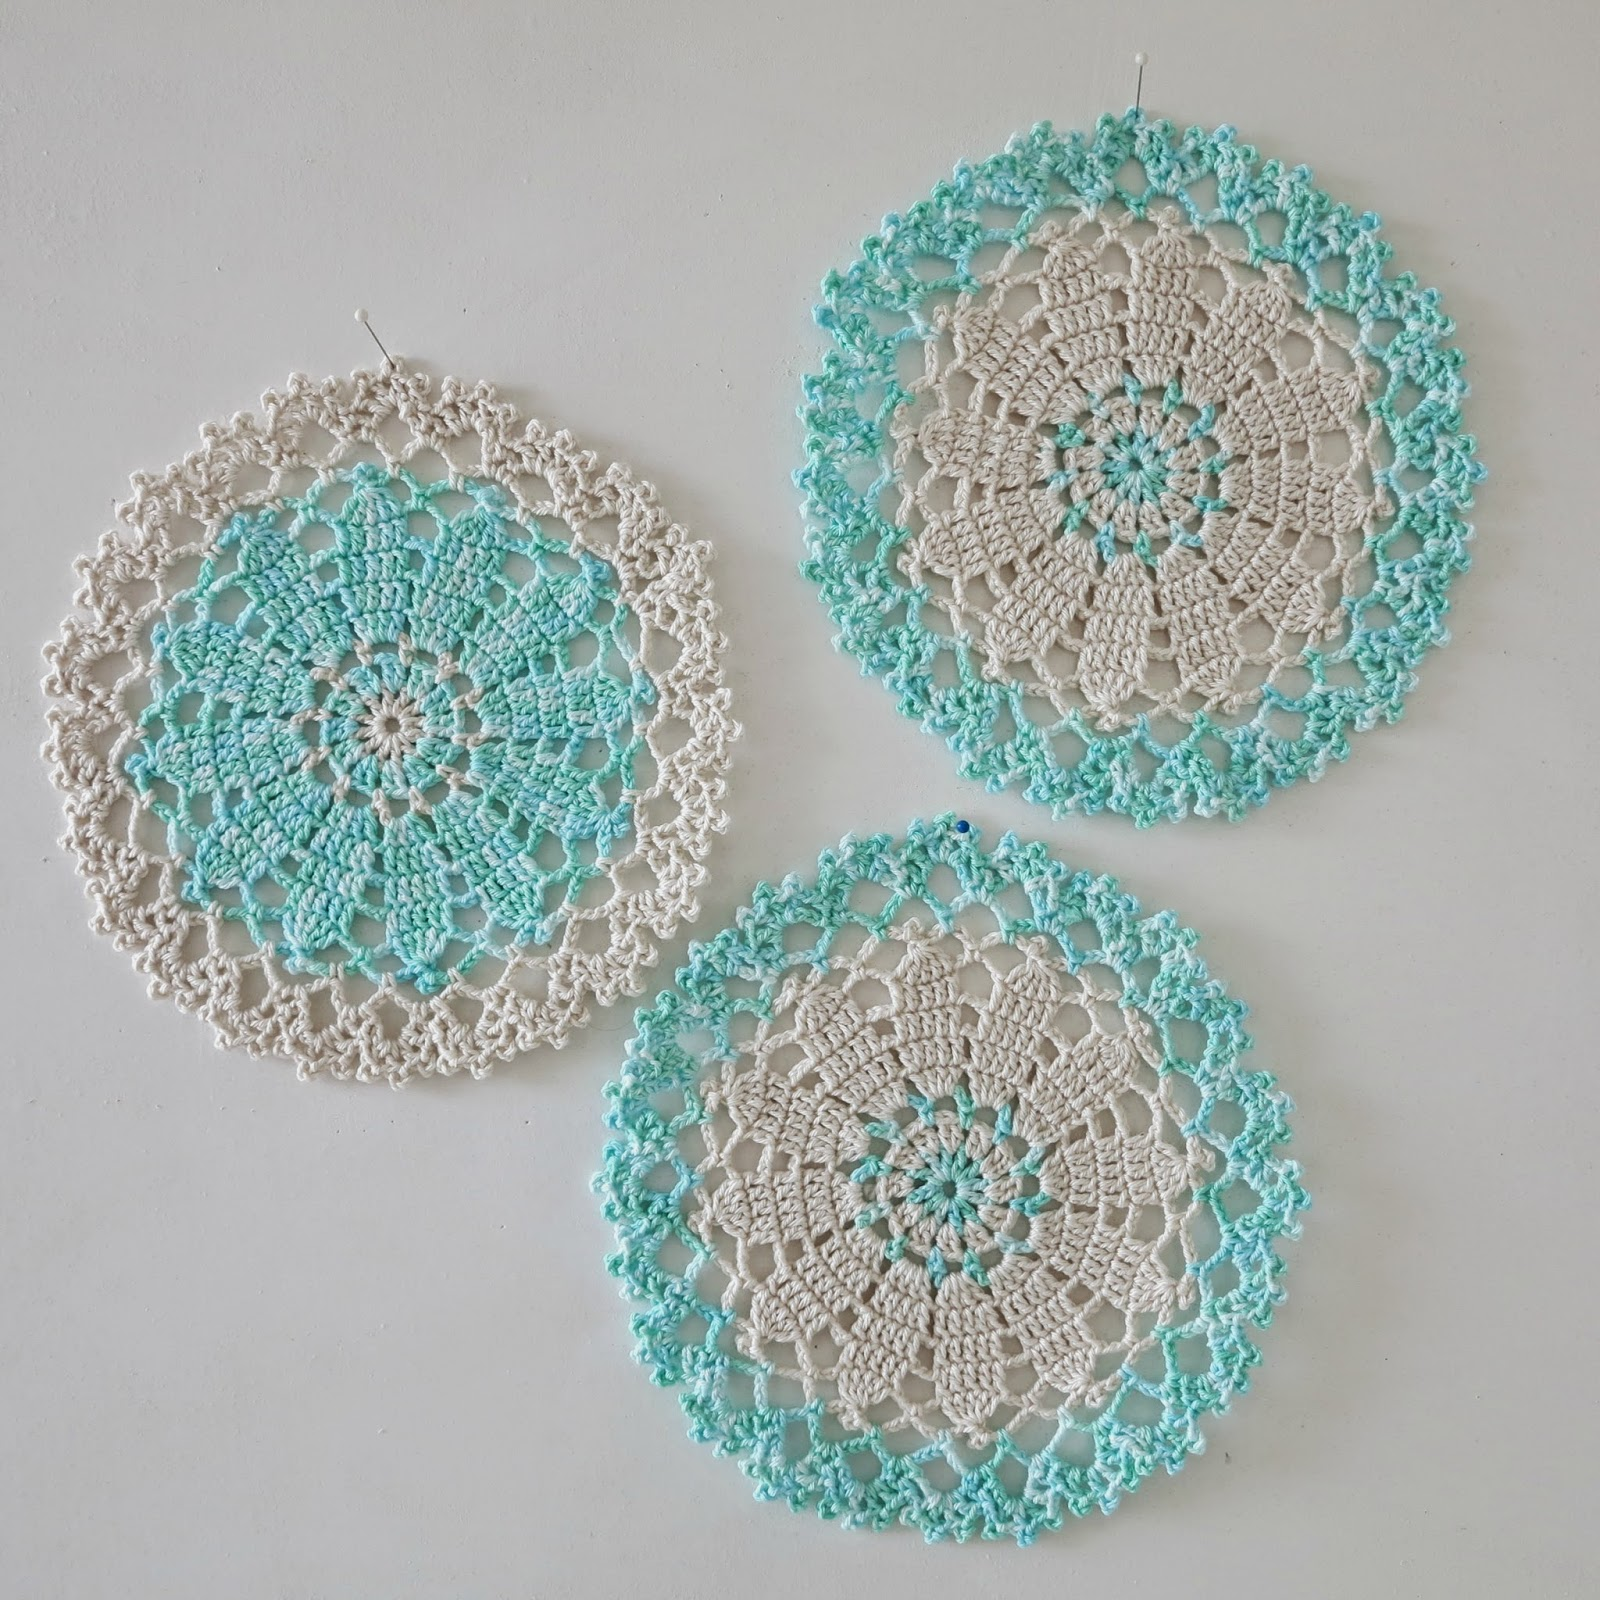 Free Japanese Crochet Doily Patterns : ByHaafner * crochet : Its Just Another Doily Monday...